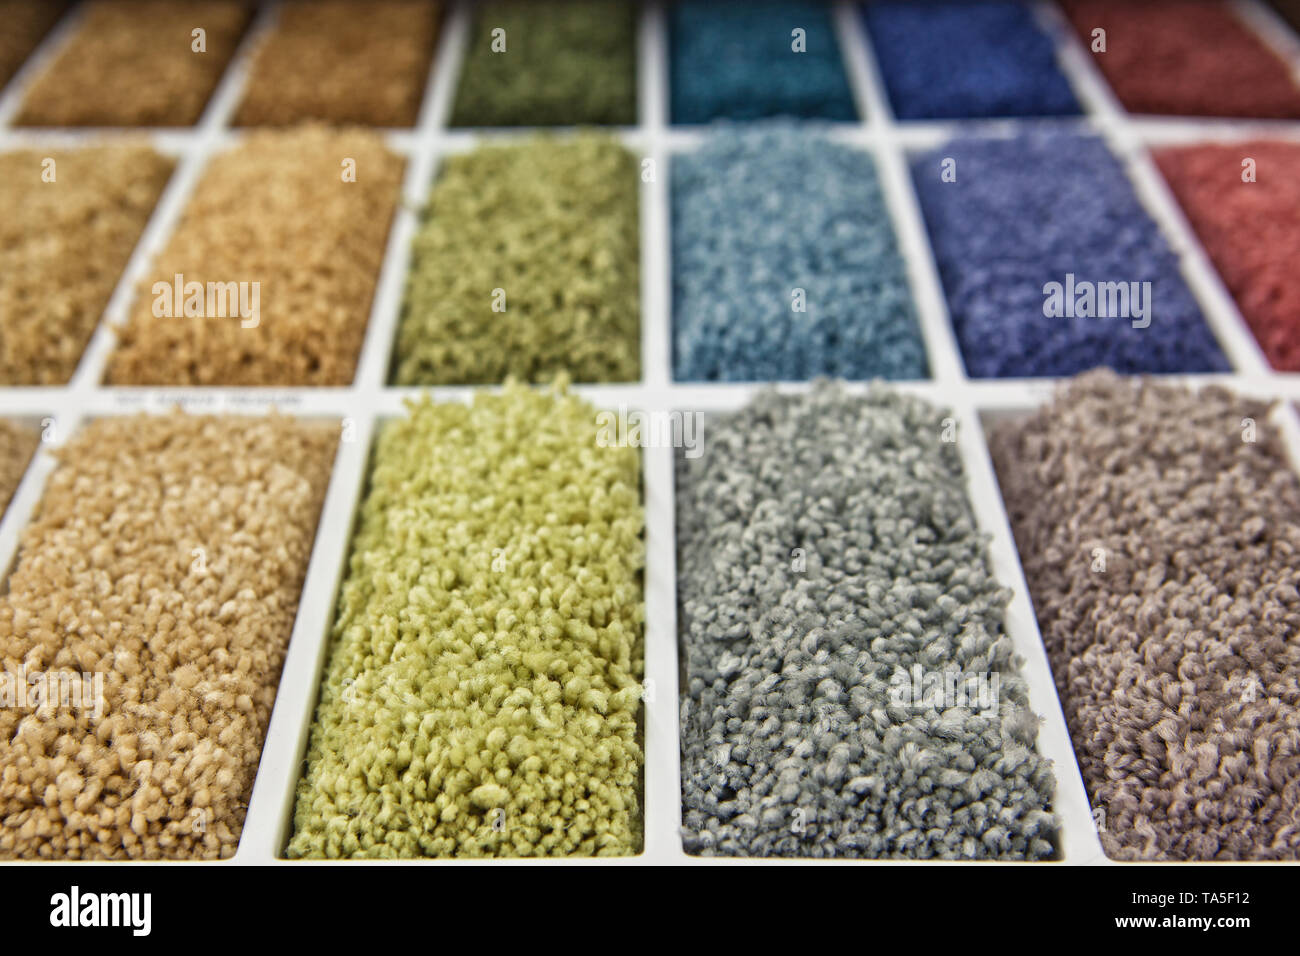 samples of multi-colored carpets on the shelves - Stock Image